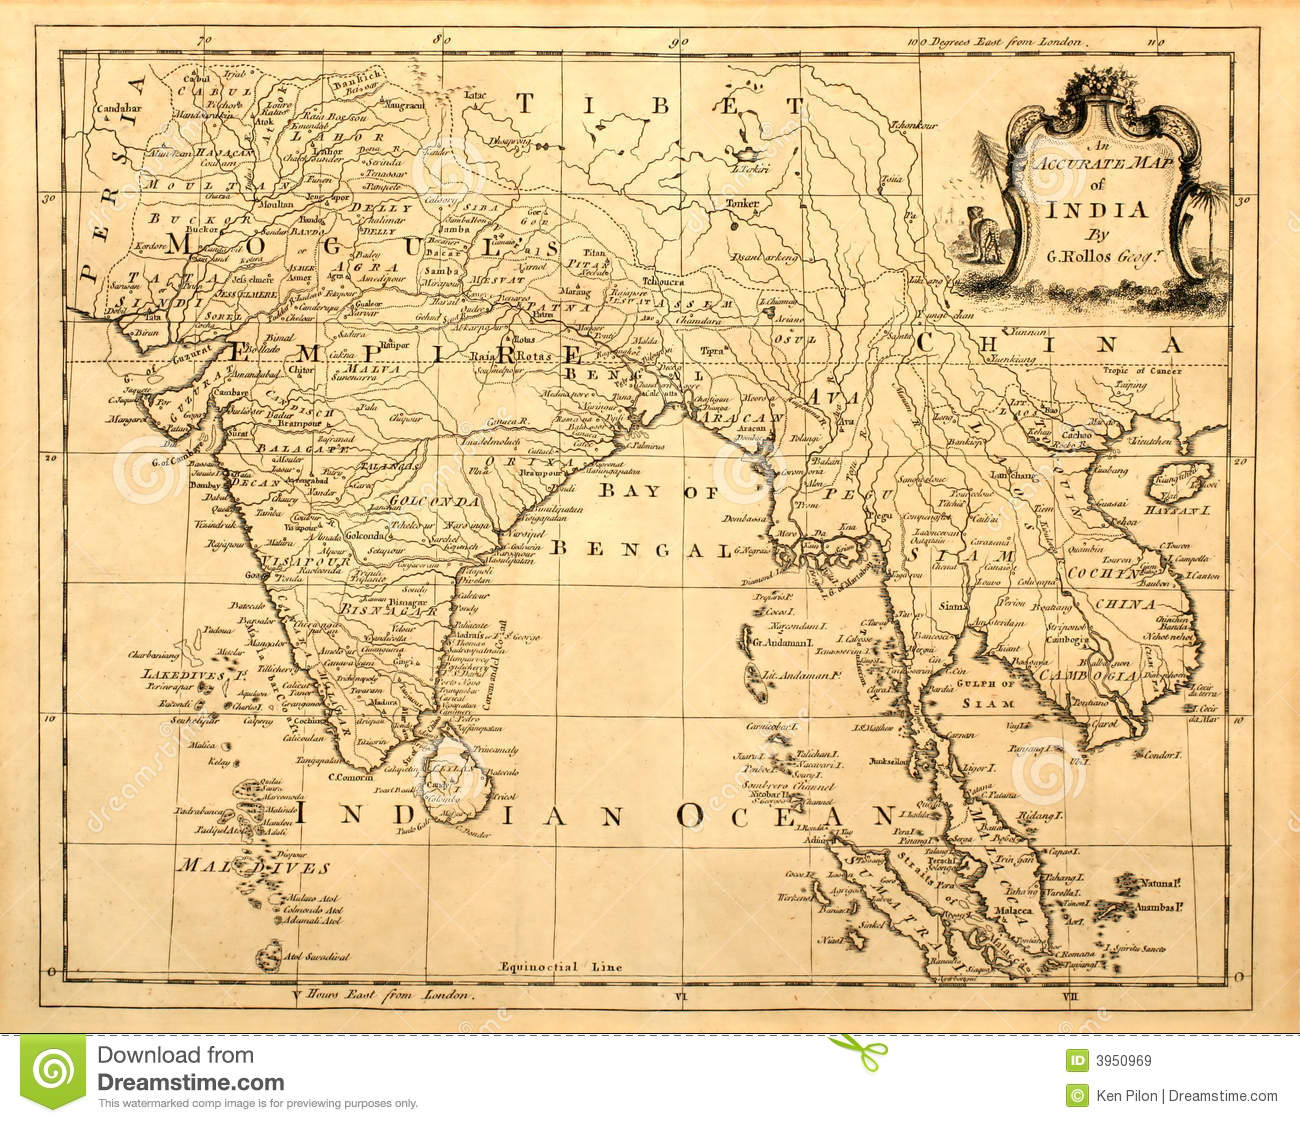 Maps of southeast asia countries old antique stock photo image of vintage map of india and se asia royalty free stock images publicscrutiny Gallery